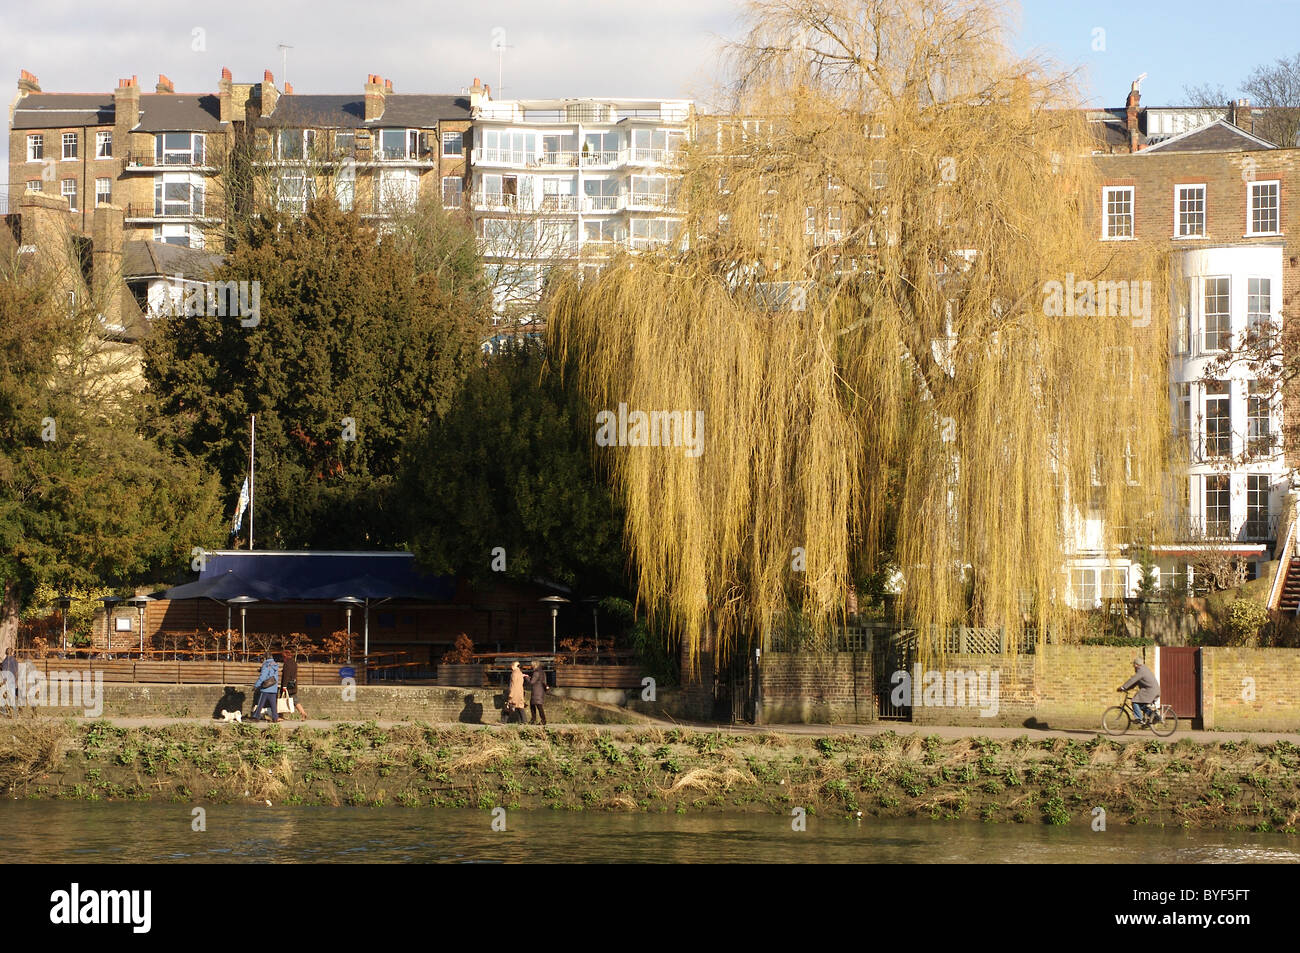 People walking on the River Thames towpath near Richmond Upon Thames - Stock Image